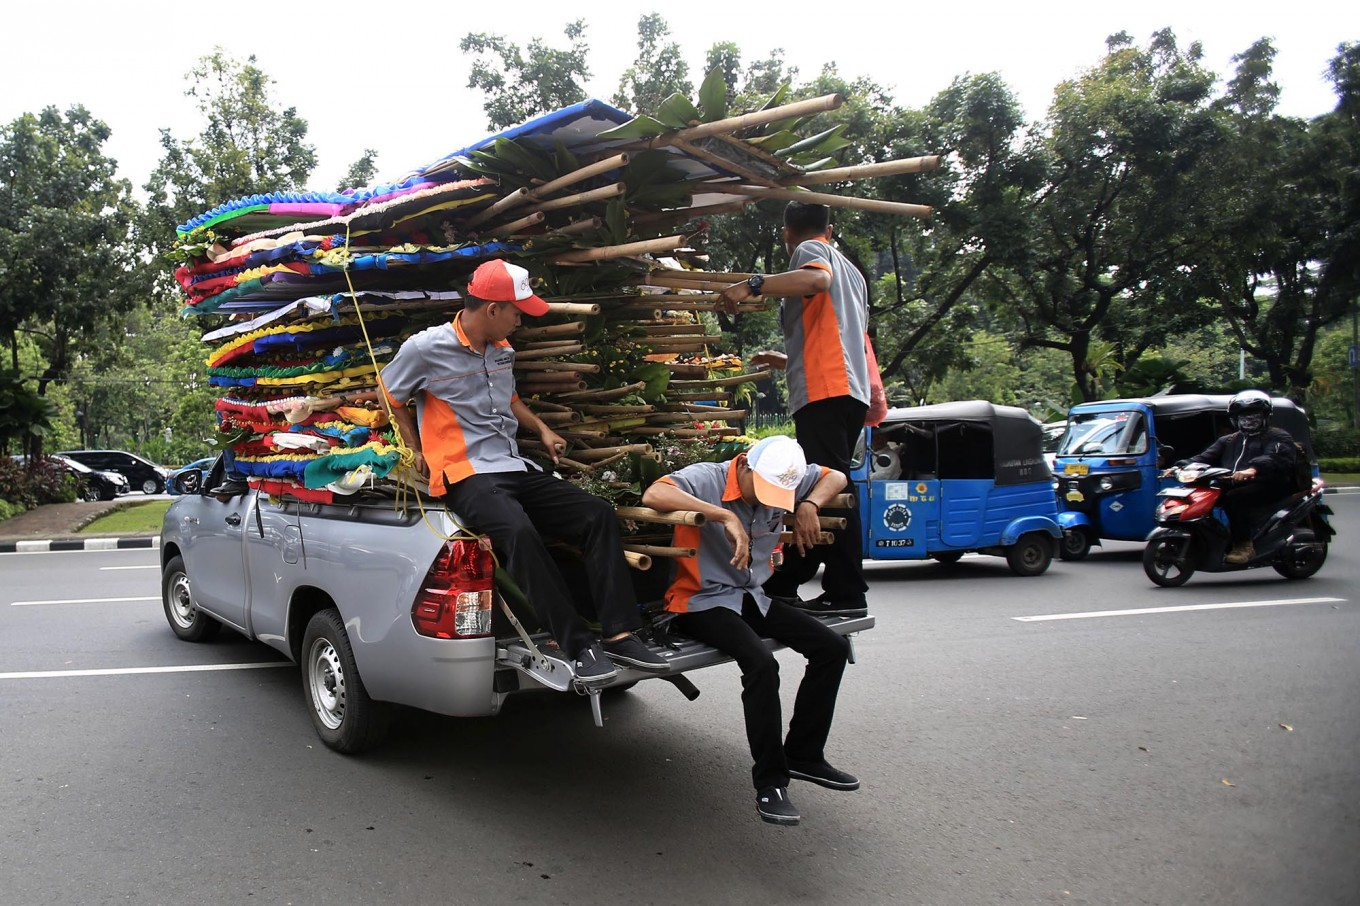 Workers remove dozens of flower boards that were previously on display for several days at the Jakarta governor's office. JP/ Dhoni Setiawan